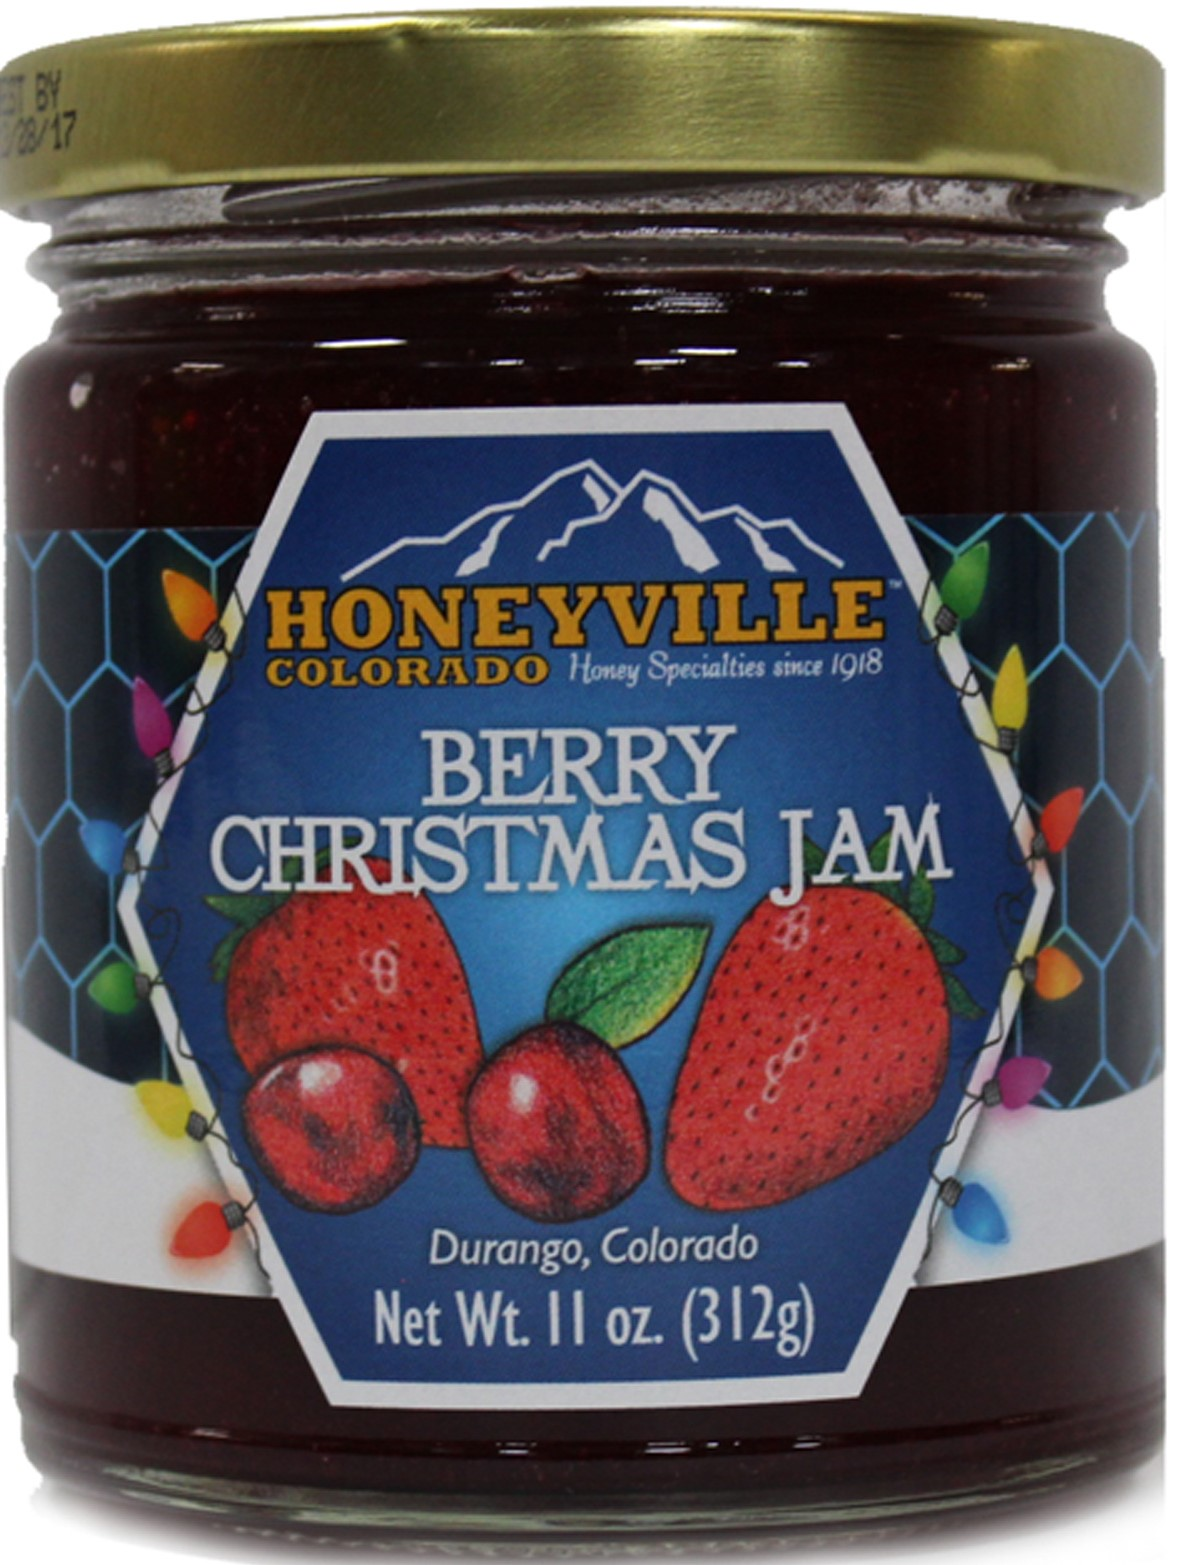 BERRY CHRISTMAS JAM